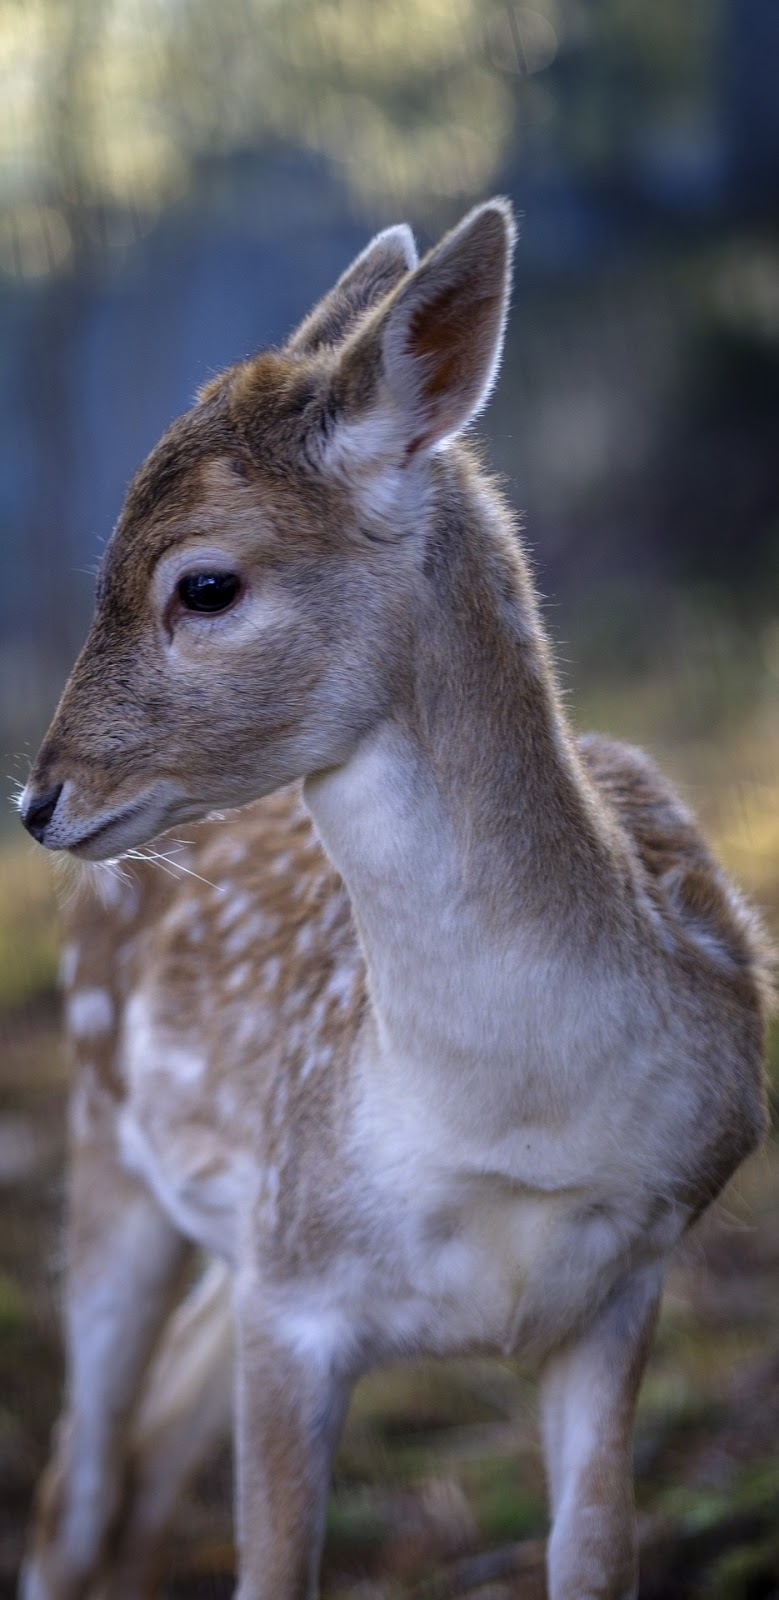 Picture of a fawn deer.